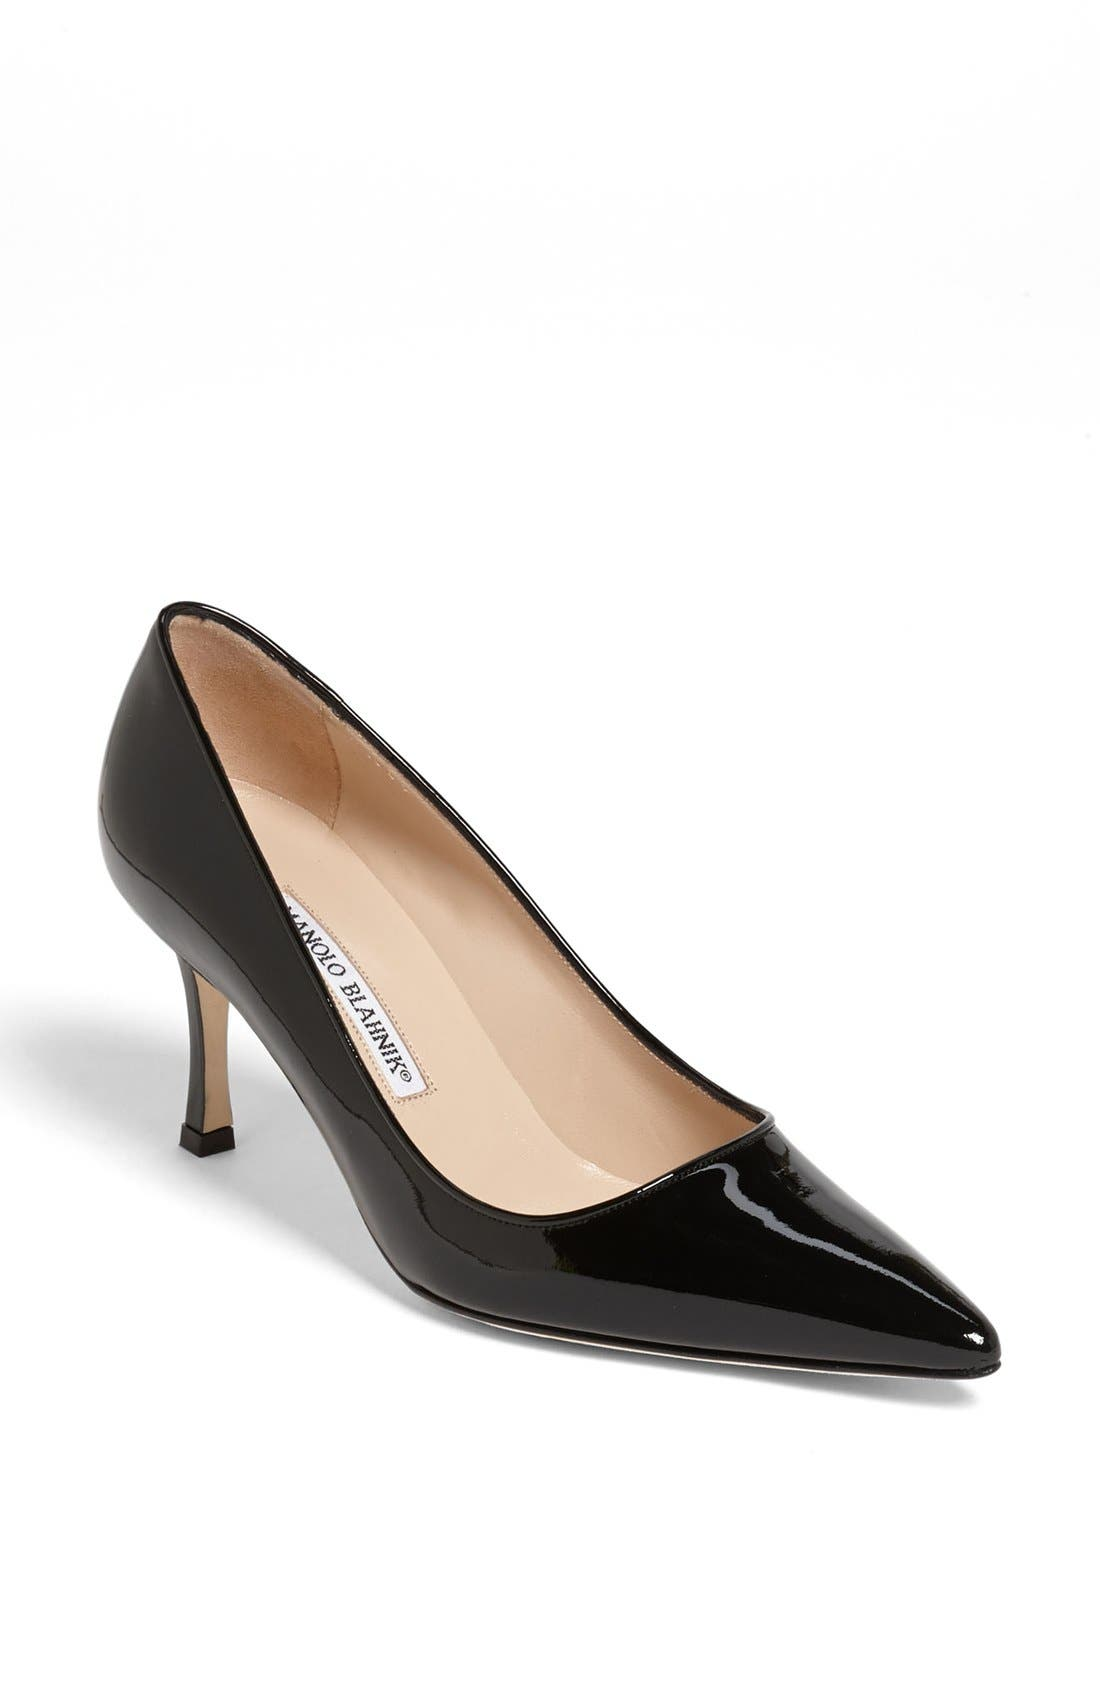 Alternate Image 1 Selected - Manolo Blahnik 'Newcio' Pump (Women)